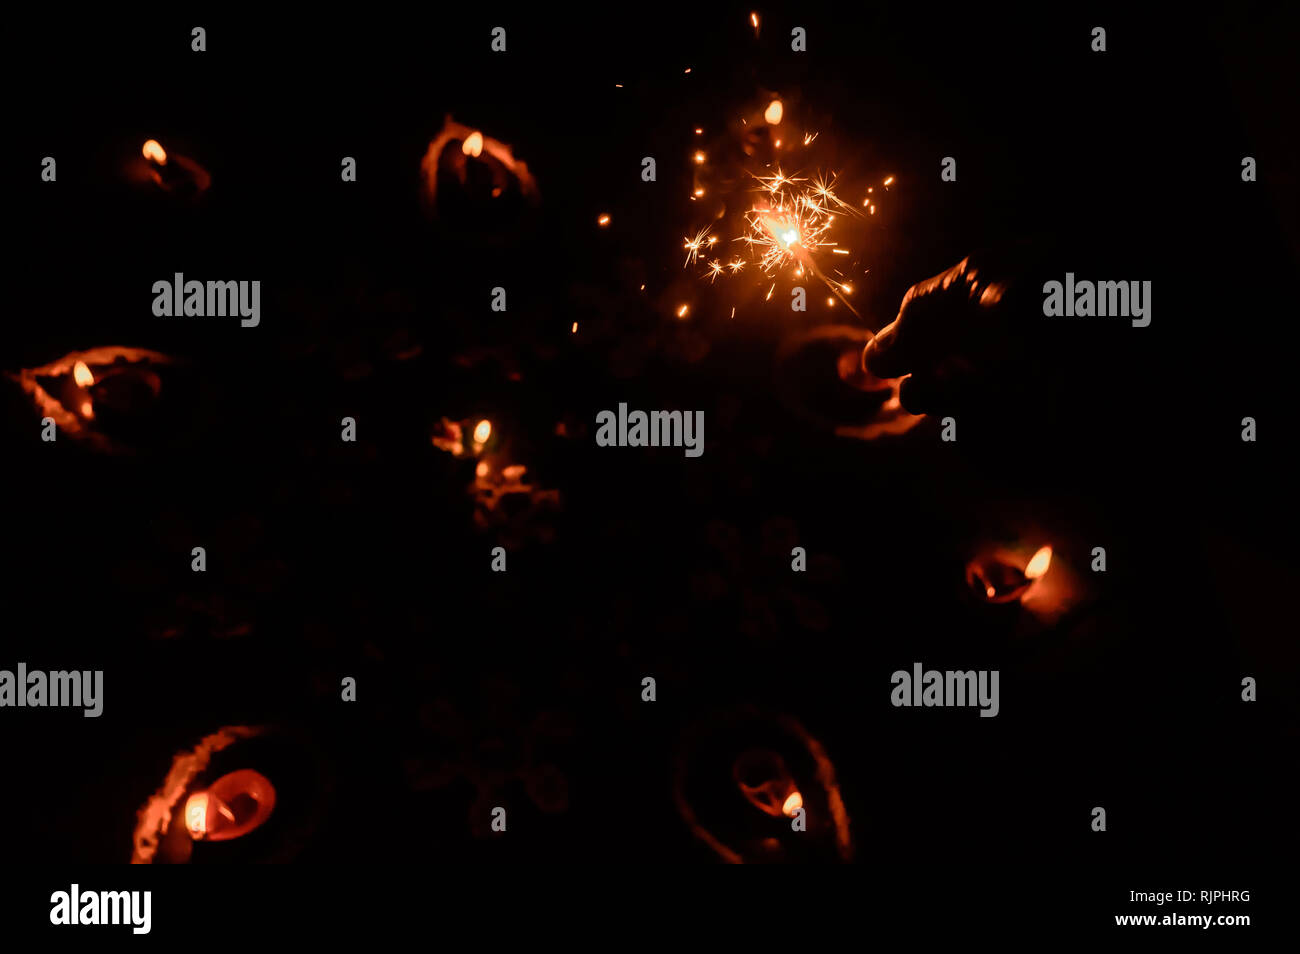 A burning Sparklers on hand over Diya-oil Lamps lit with real red flame in festival season of Diwali on black background. Removing darkness concept. S - Stock Image